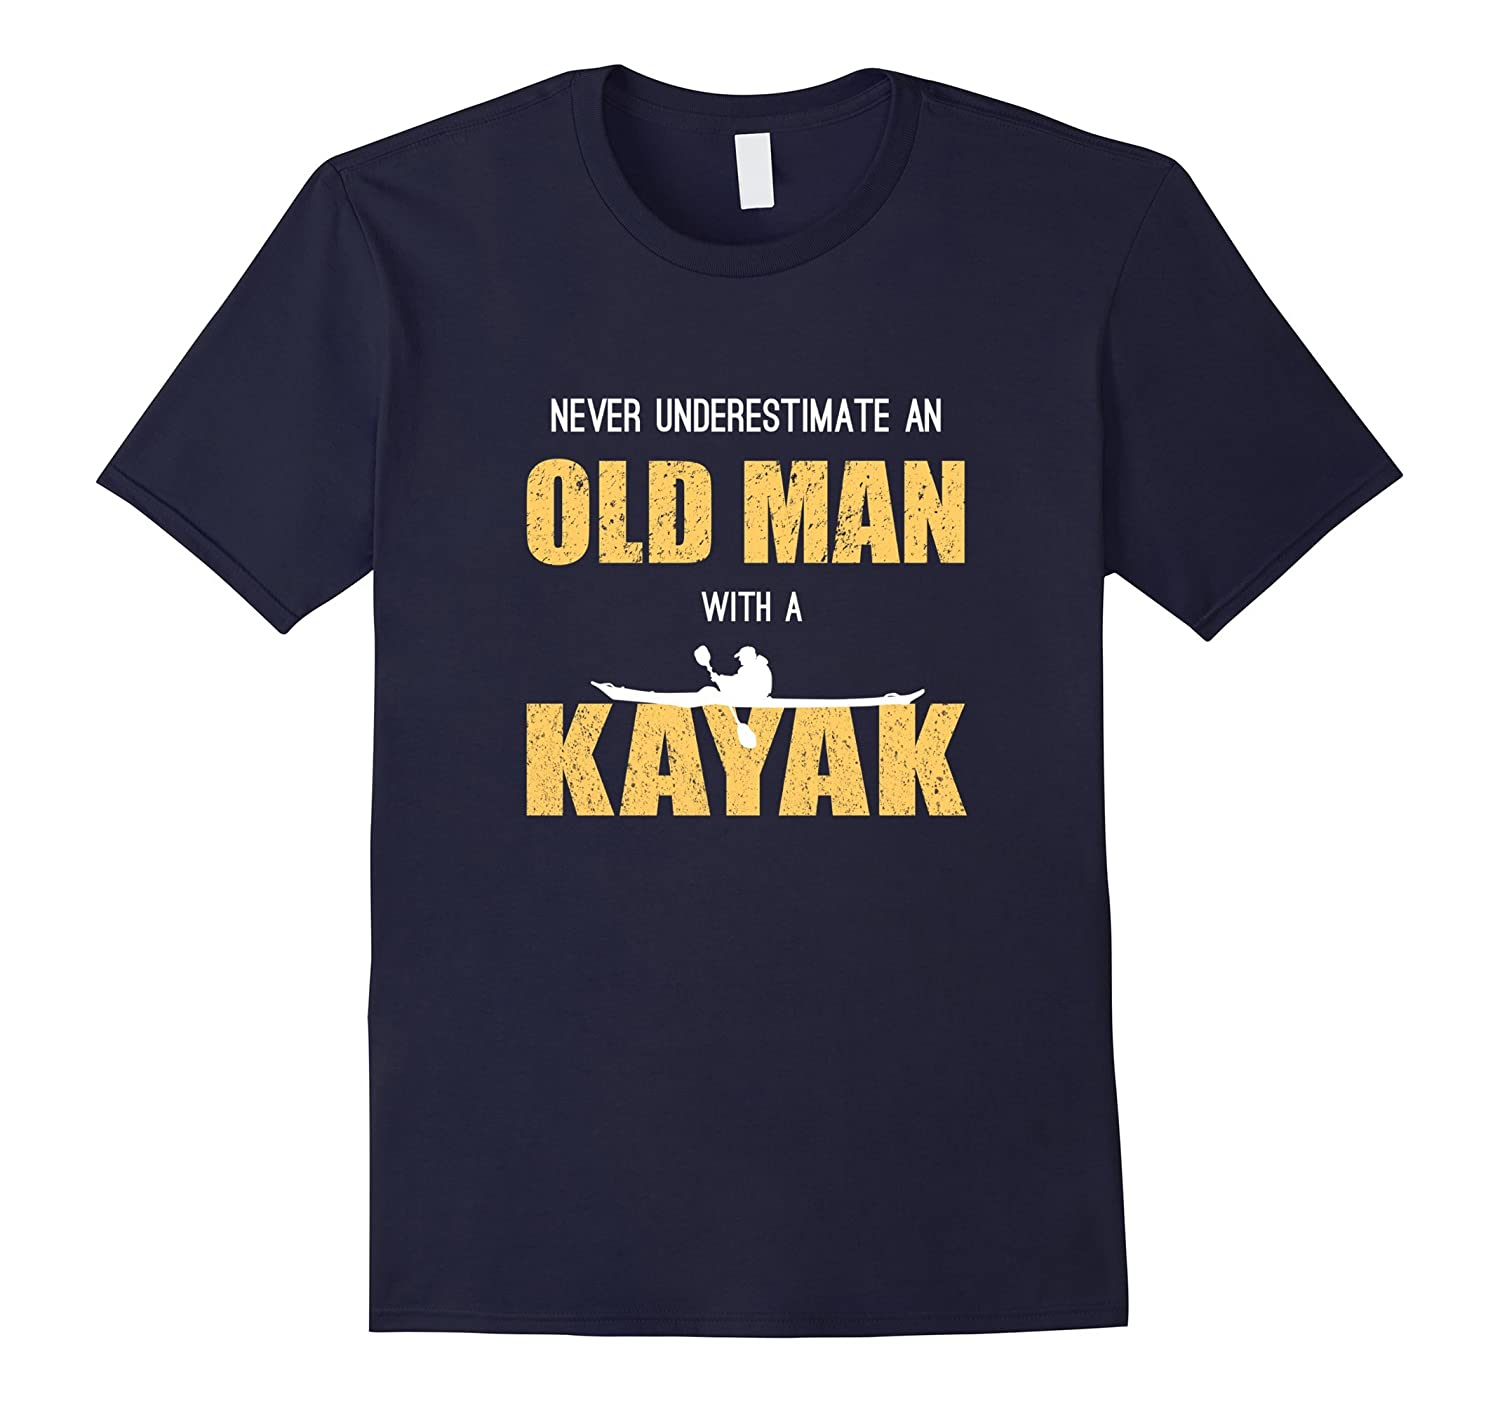 Never Underestimate An Old Man With a Kayak - Funny T-Shirt-CL